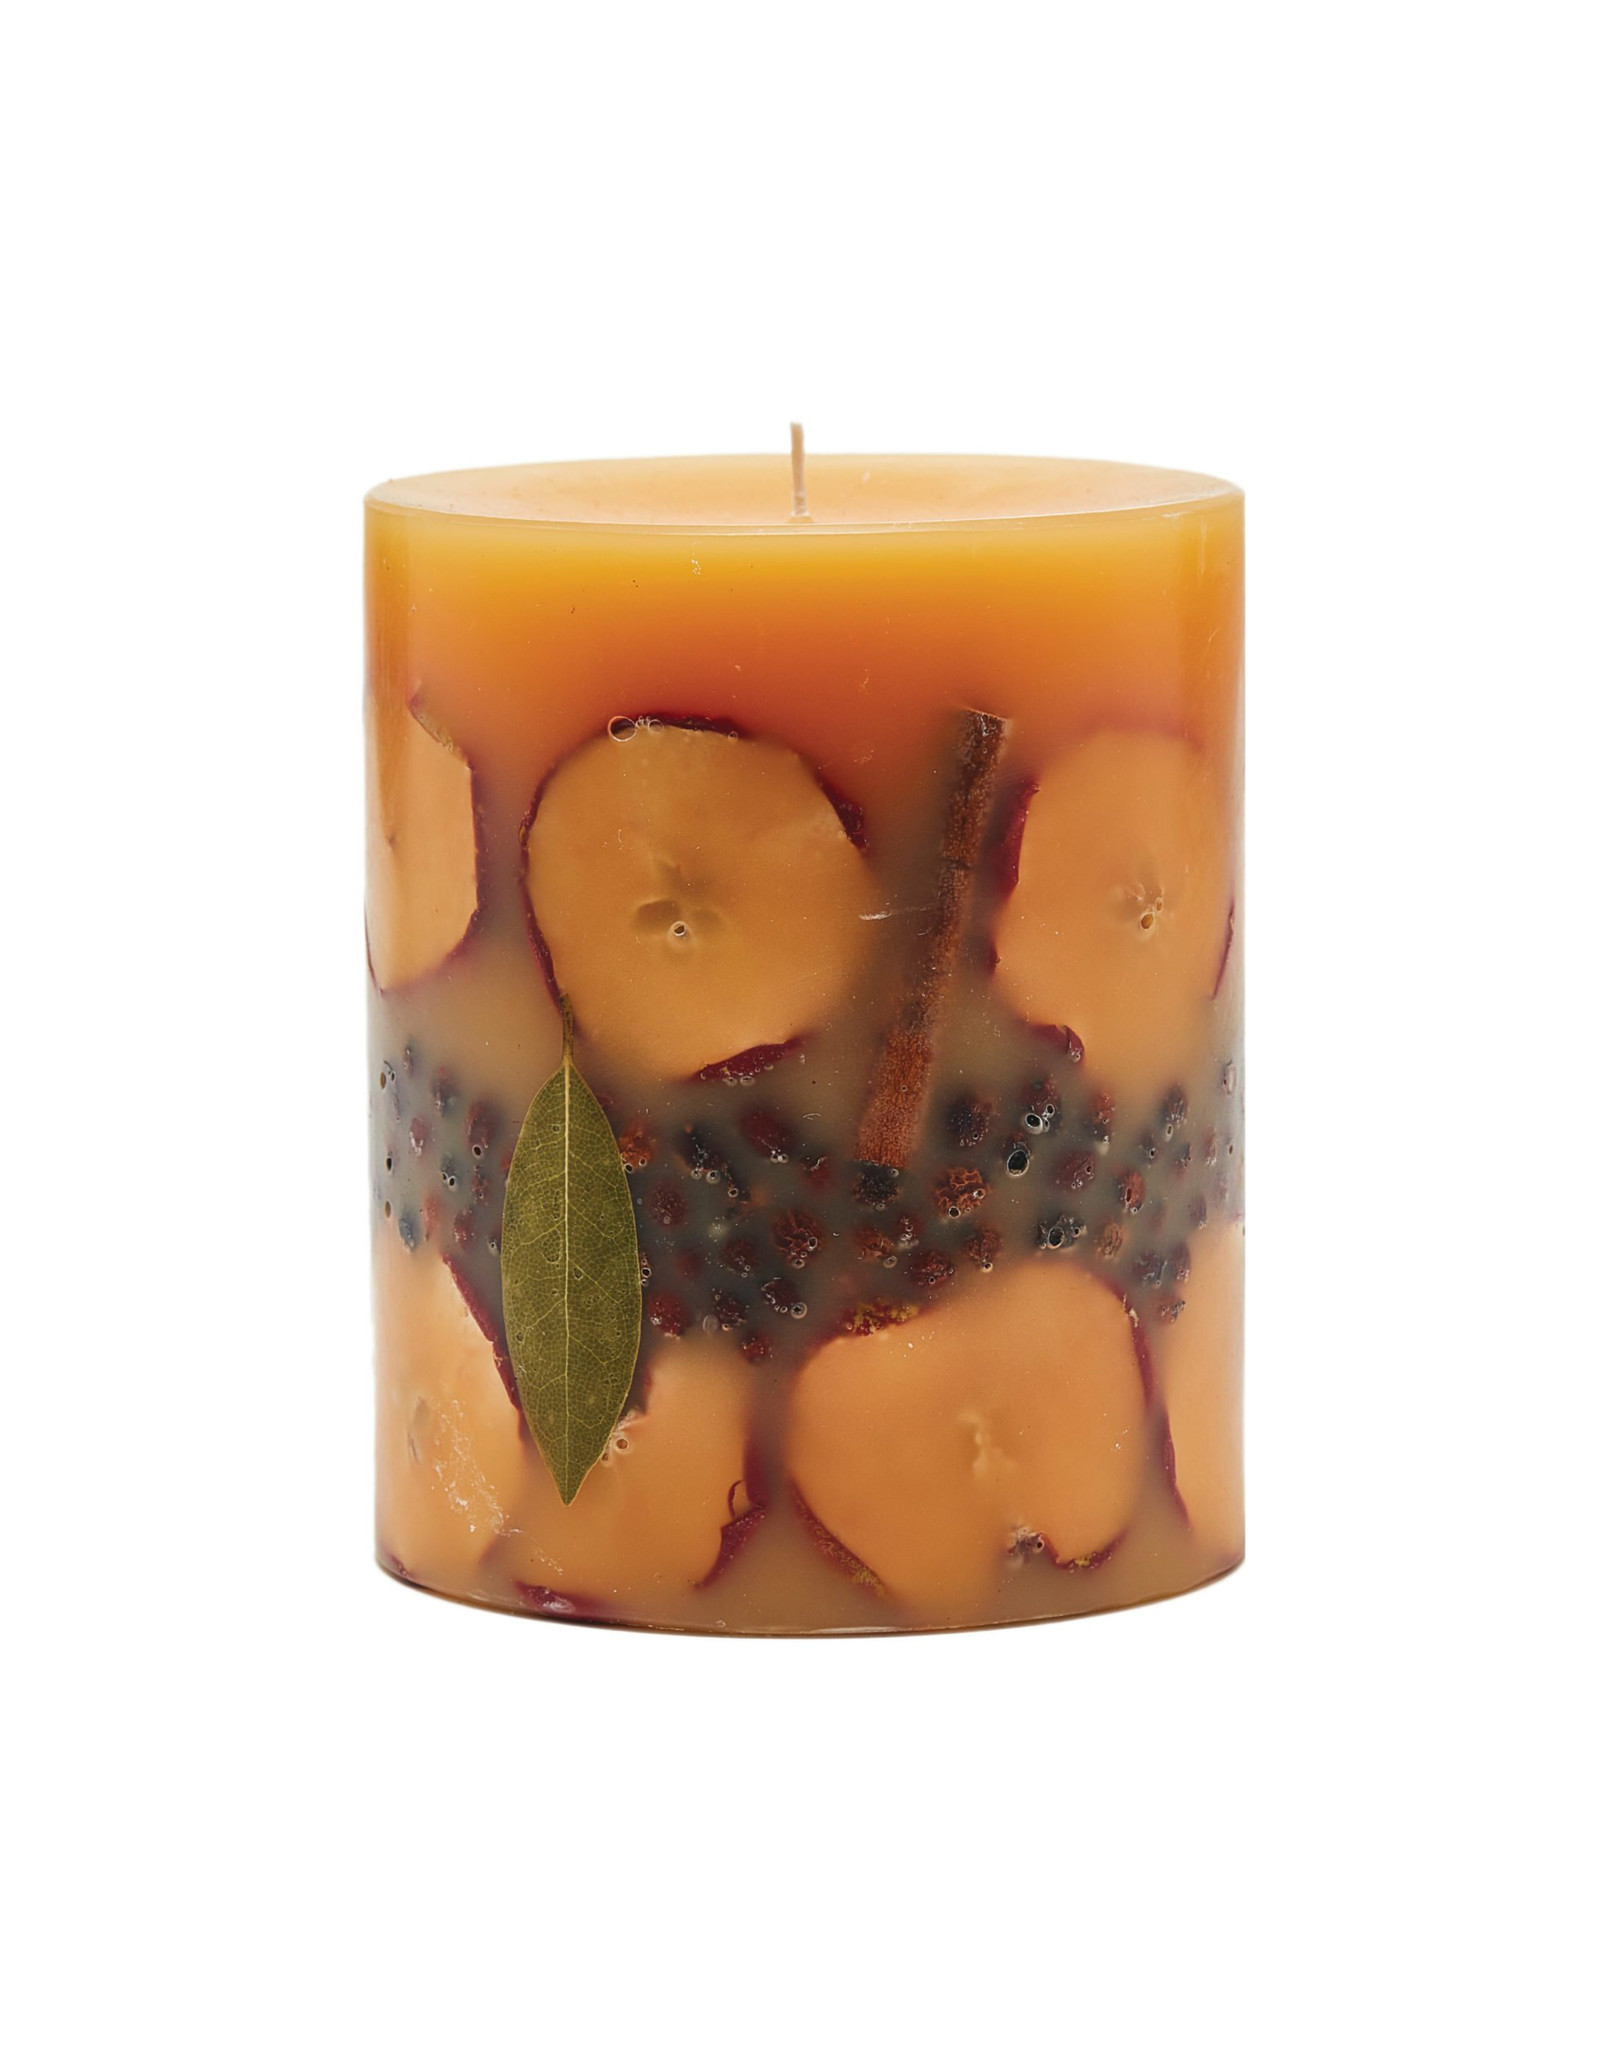 ROSY RINGS SPICY APPLE SMALL ROUND BOTANICAL CANDLE